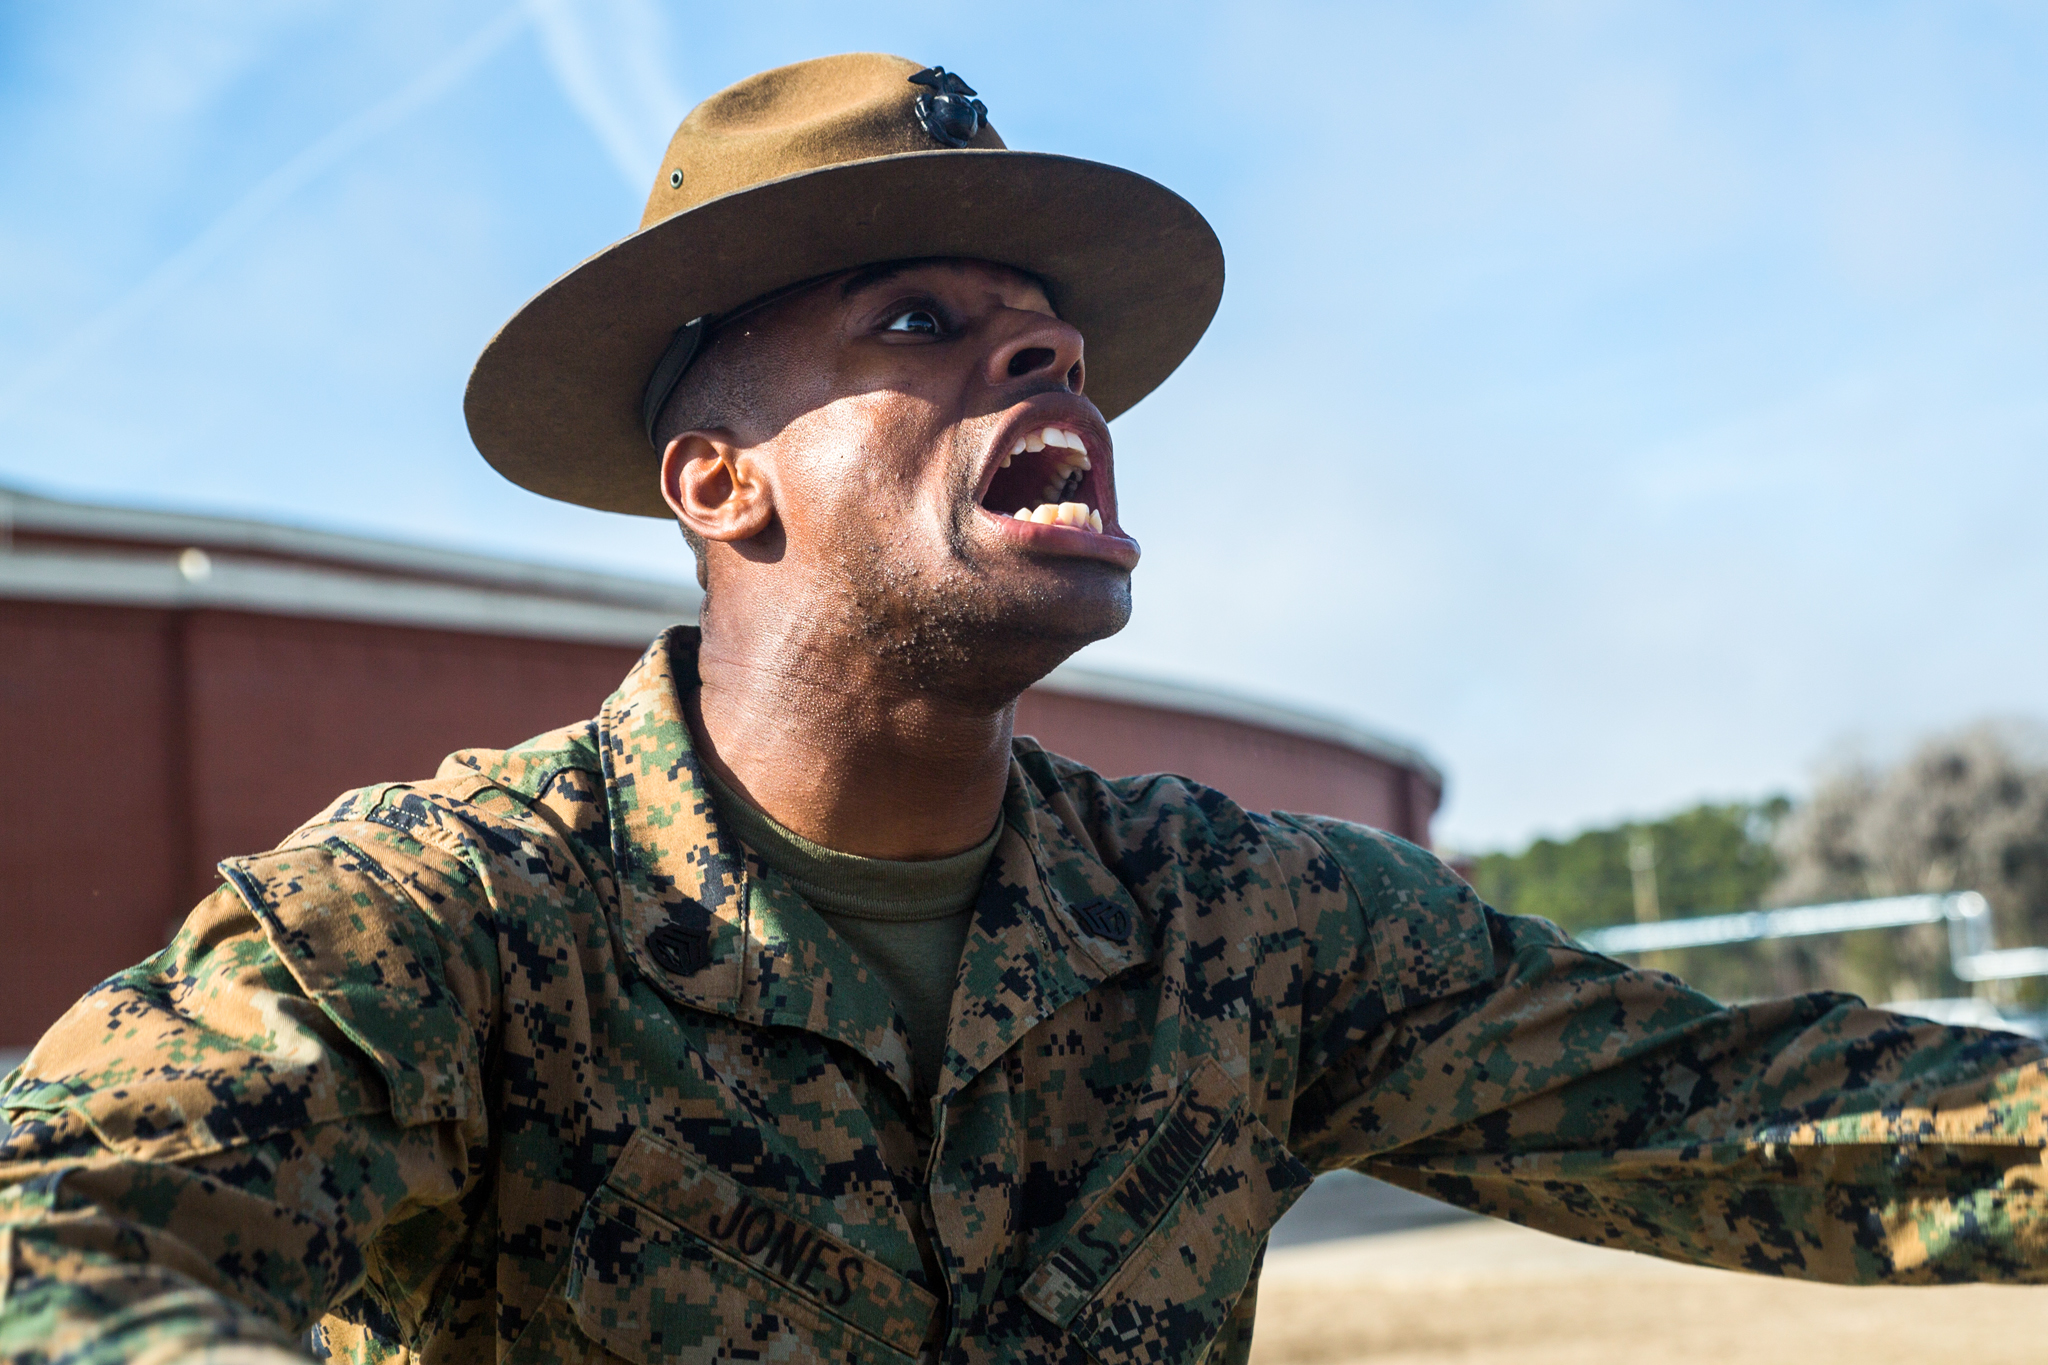 Drill Instructor Usmc Parris Island Dvids Images Photo